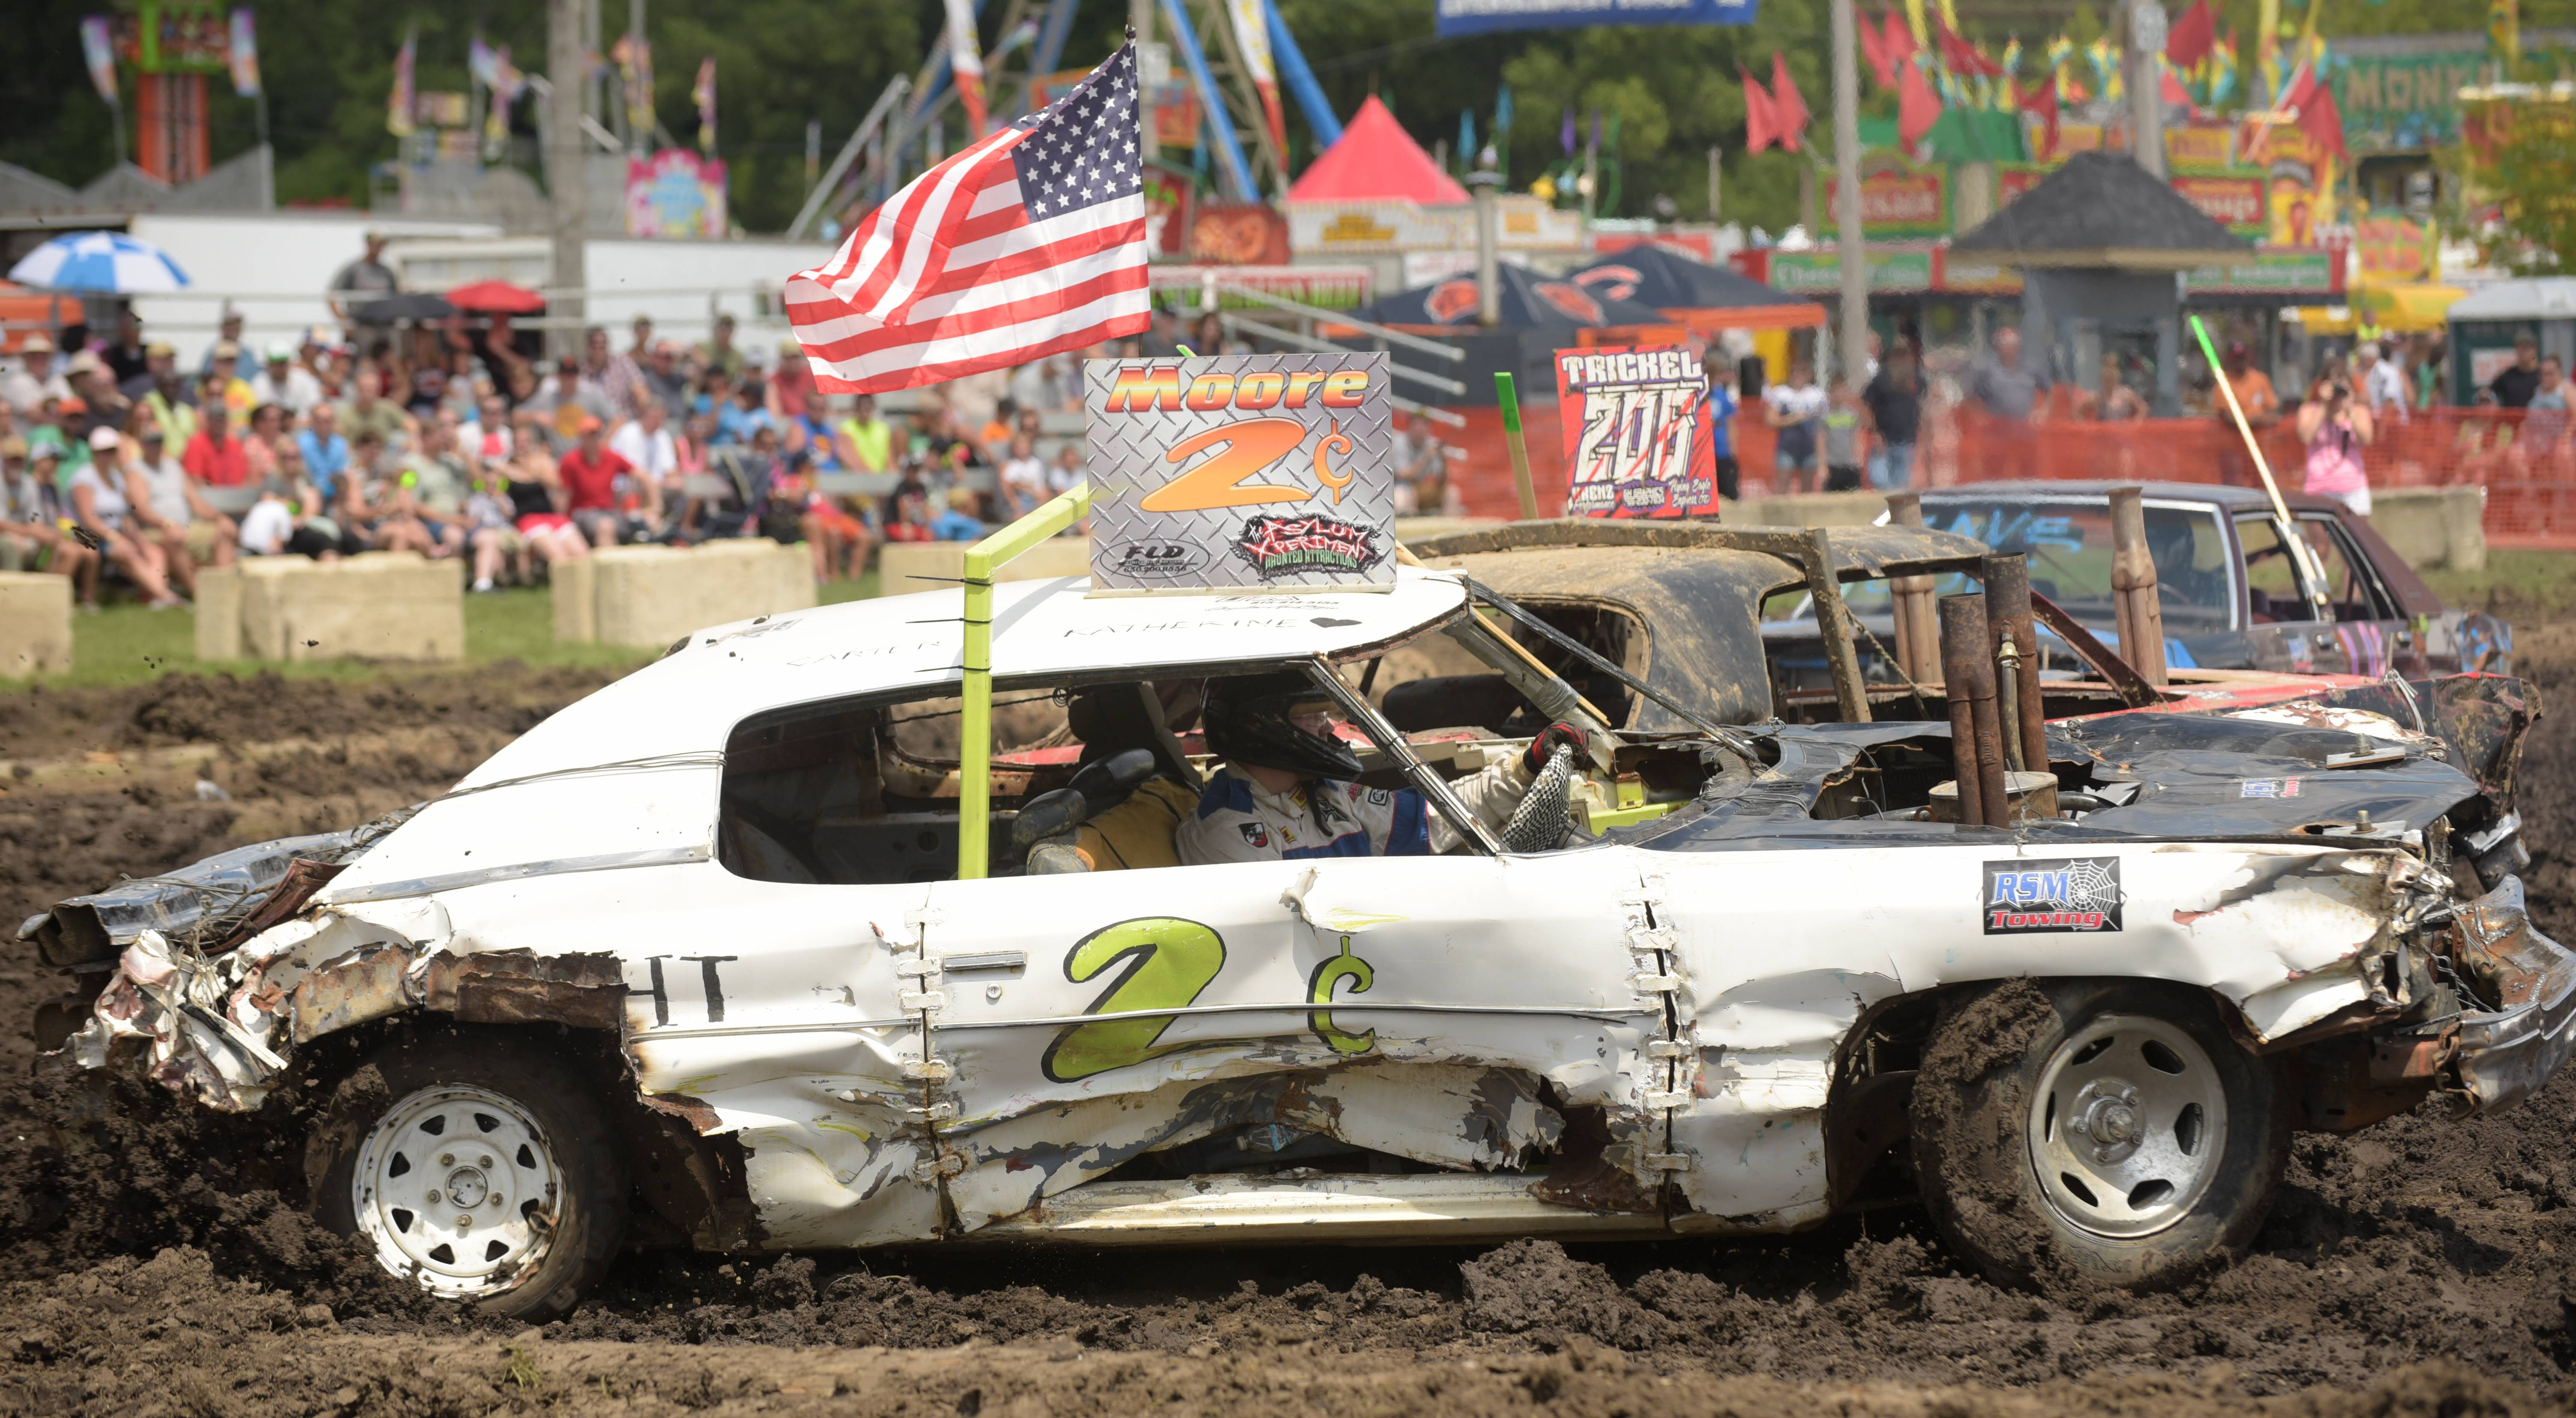 Crashes abound at the annual demolition derby at the DuPage County Fair.